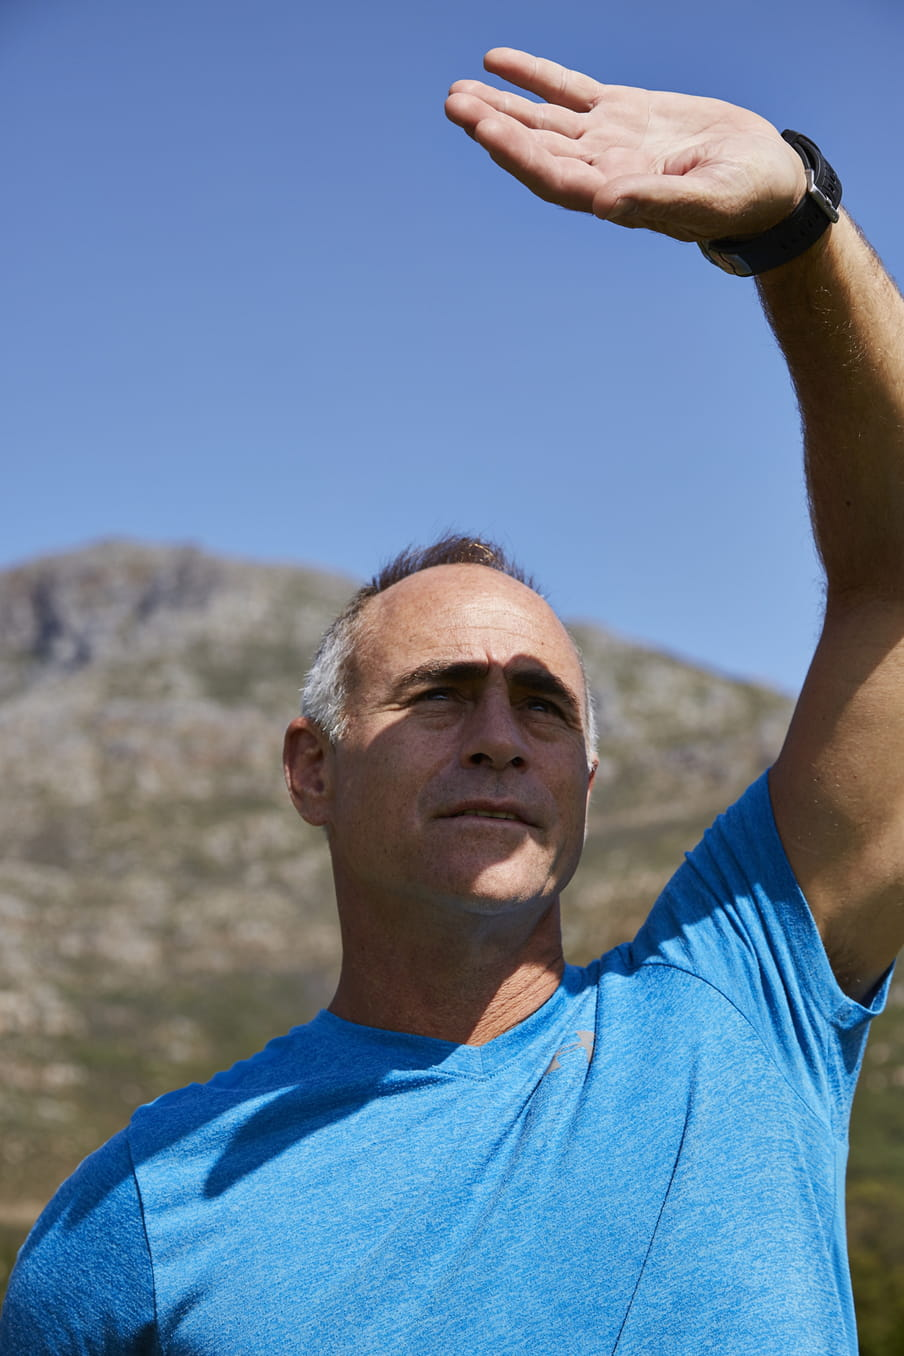 Photo of a man in a blue shirt looking up, blocking his eyes from the sun with his arm